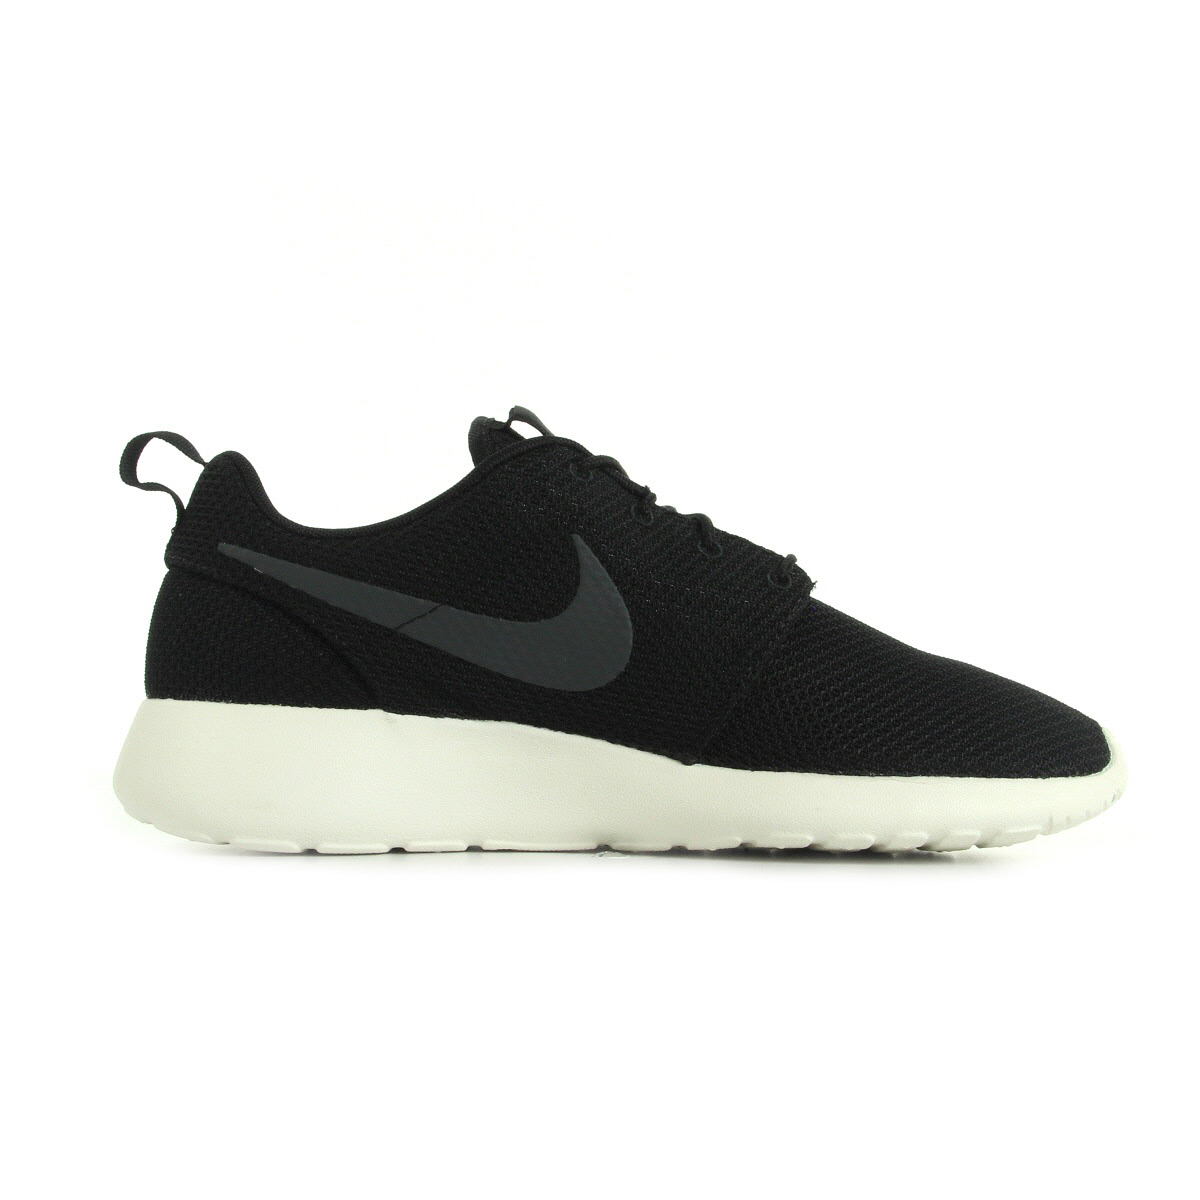 nike roshe one 511881010 chaussures homme homme. Black Bedroom Furniture Sets. Home Design Ideas